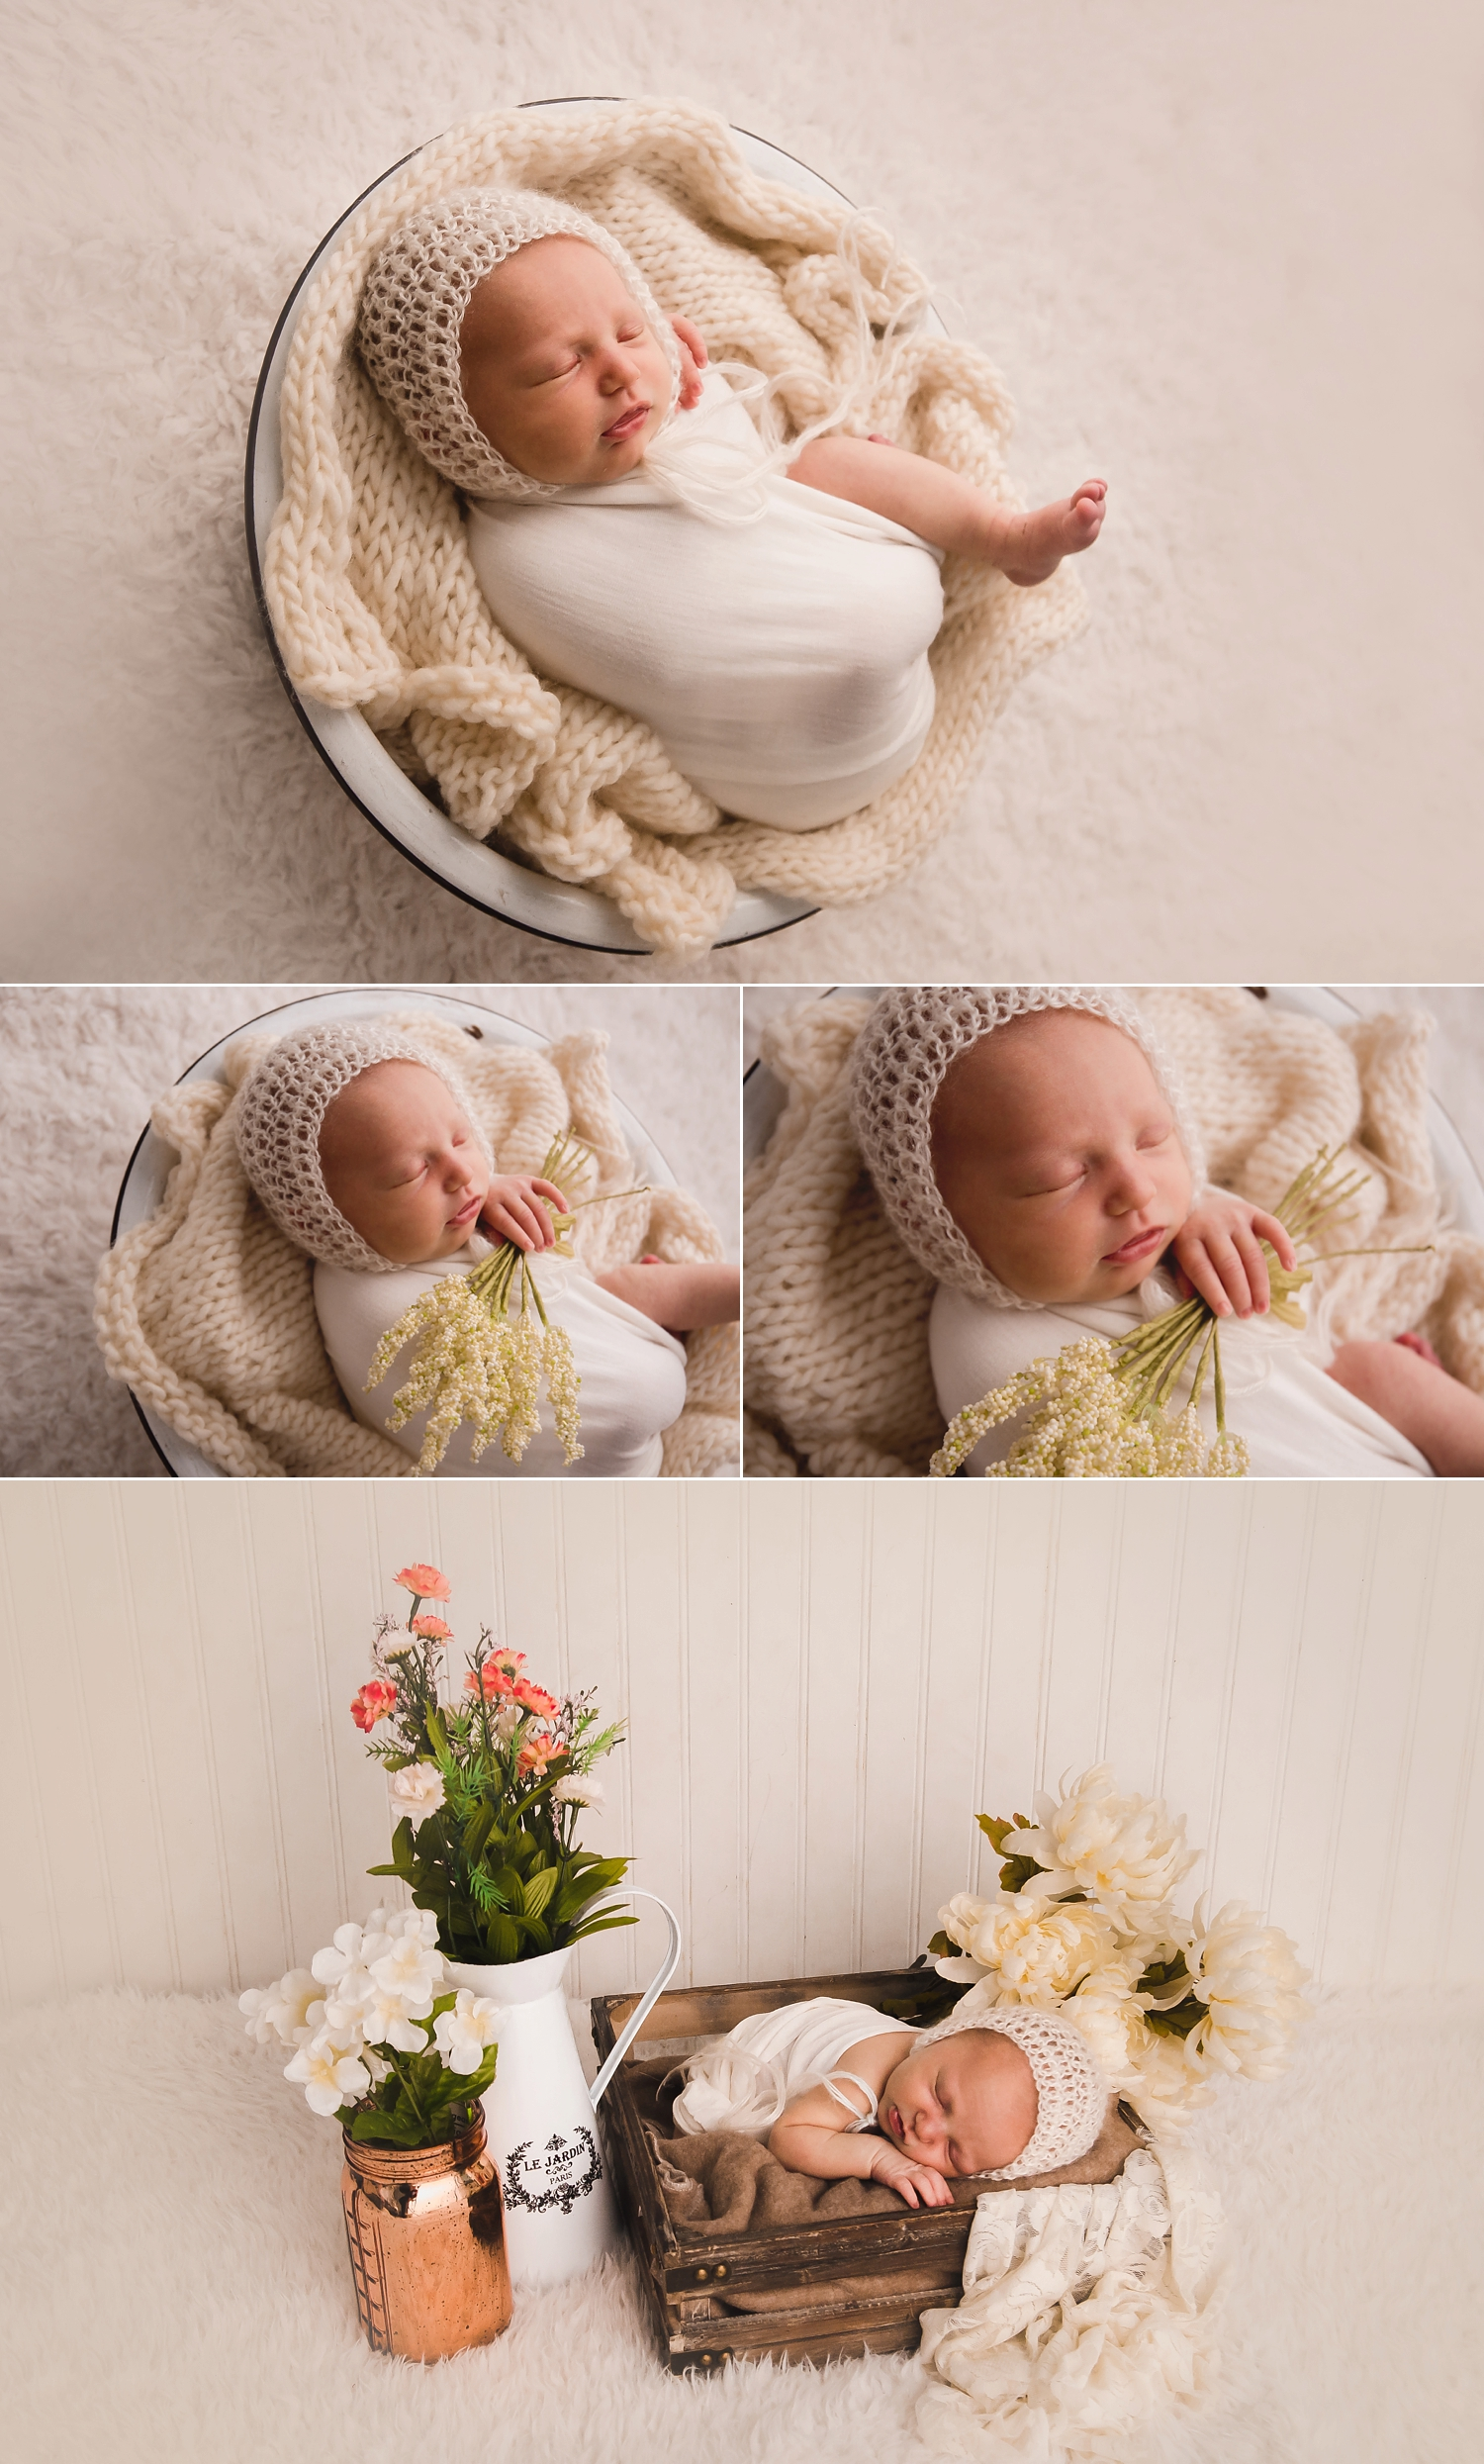 Newborn girl is posed in a bucket, and with flowers for prop shots